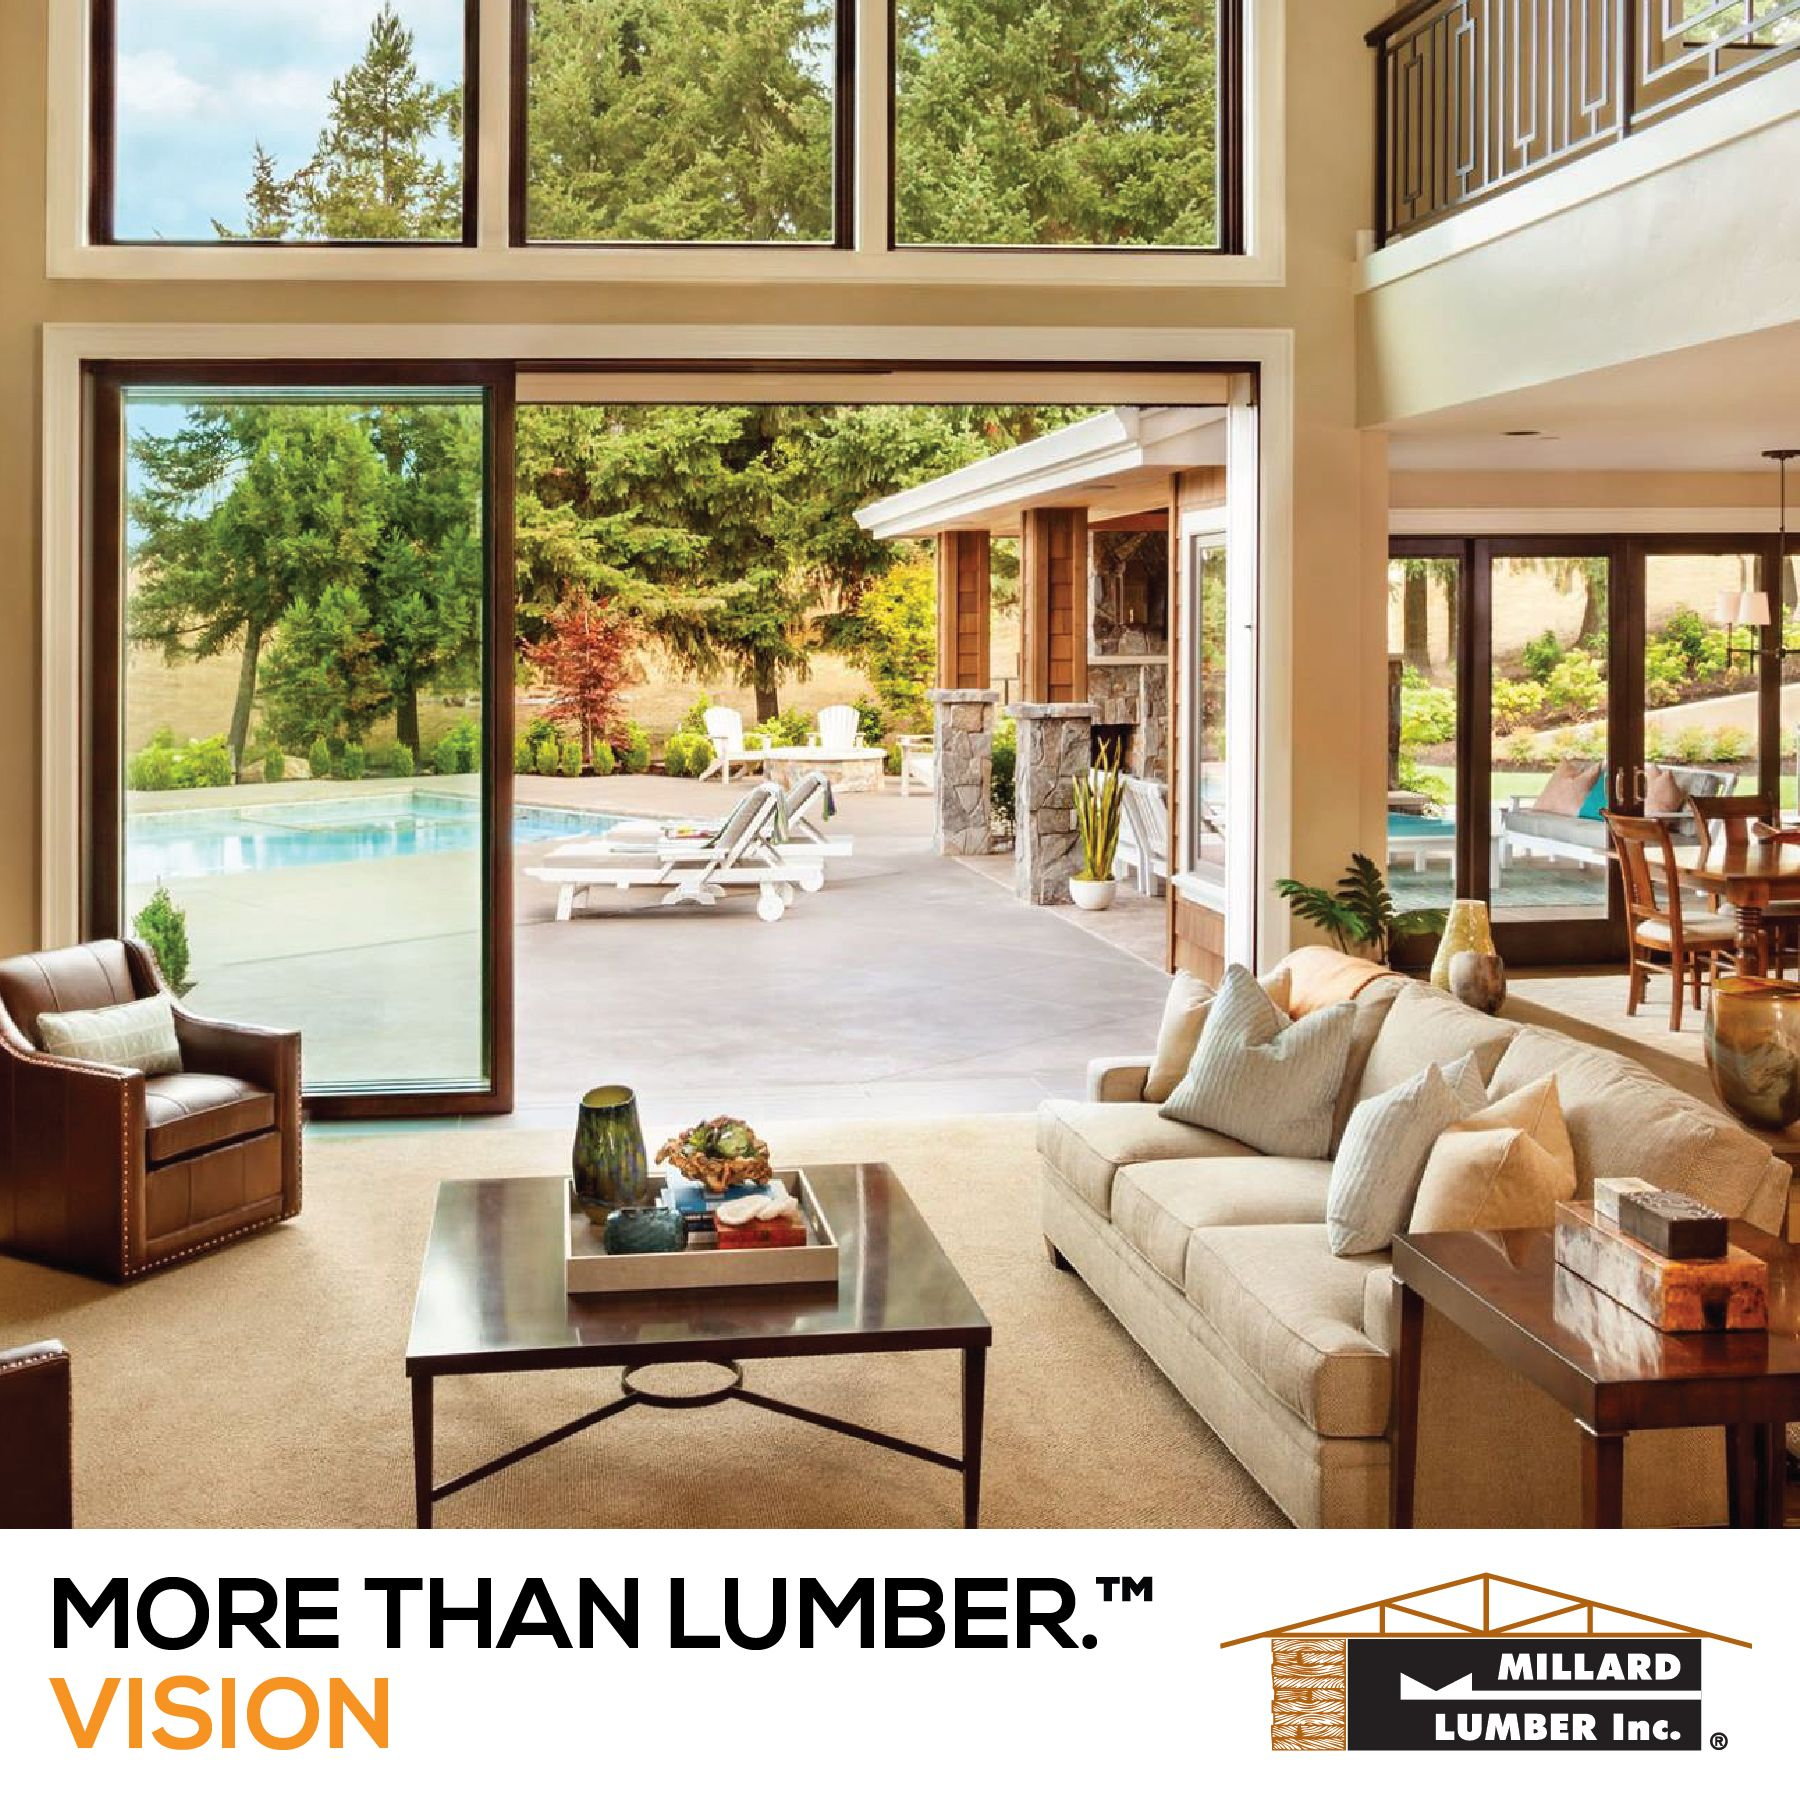 Visit Millard Lumber to discover all the ways we are #MoreThanLumber